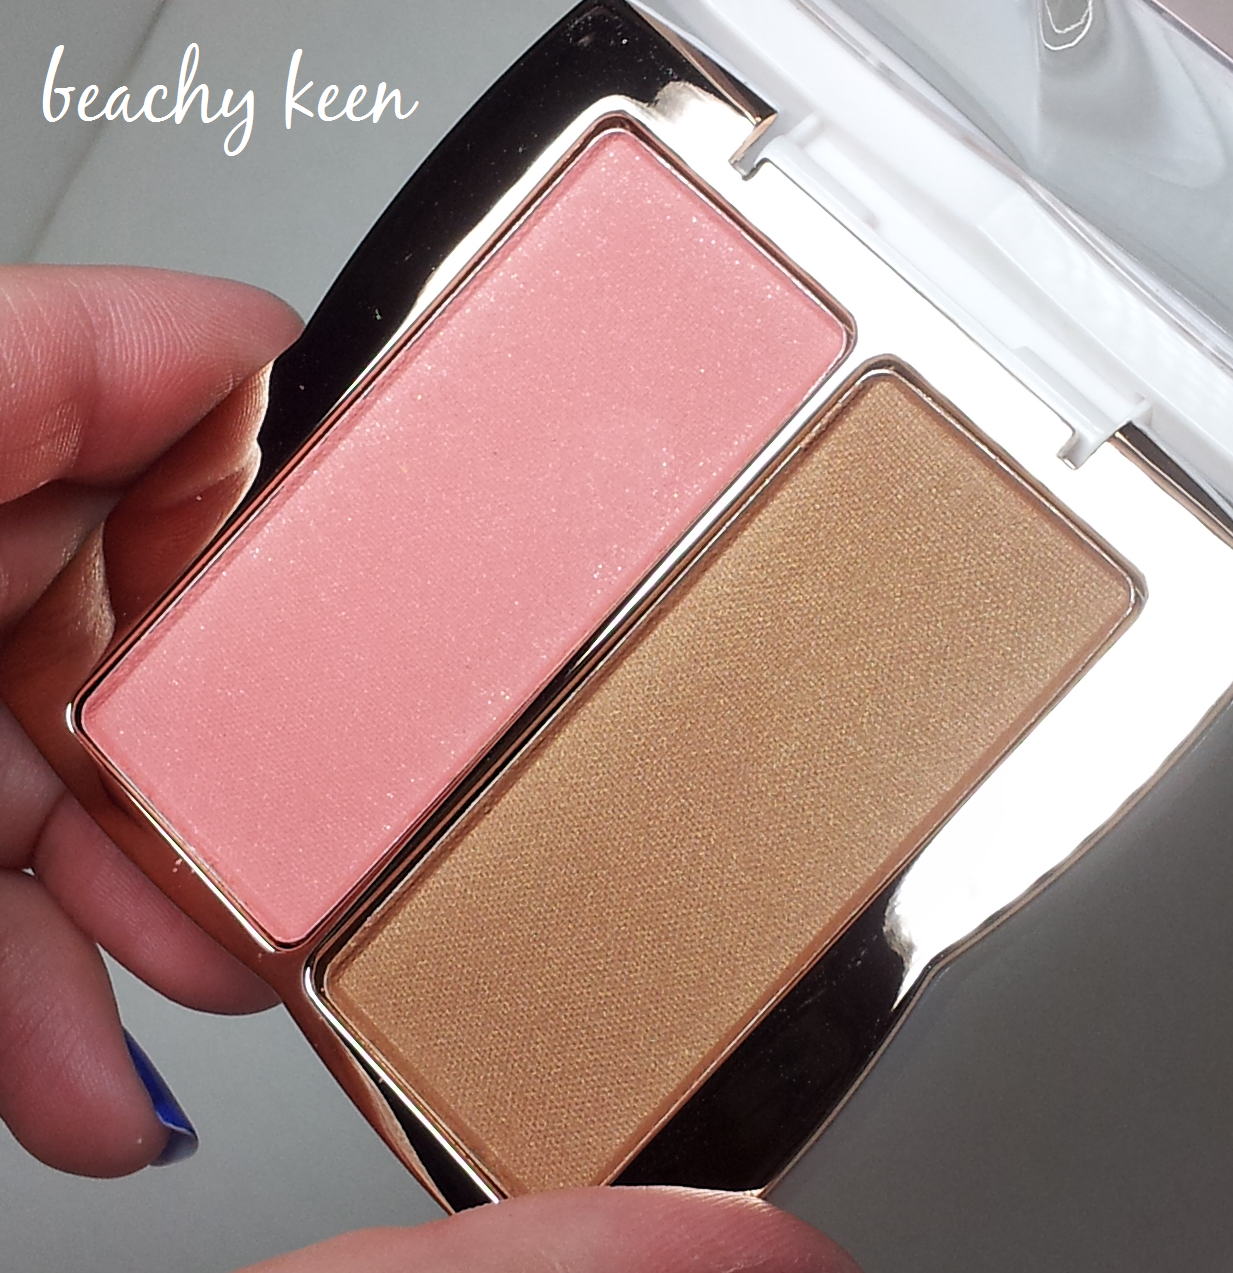 Lainamarie91 flower beauty glow baby glow blush bronze duo bd1 if you know me youd know i have been in love with the flower beauty blushbronzer in shimmering goddess and ive been wanting to pick up this shade in izmirmasajfo